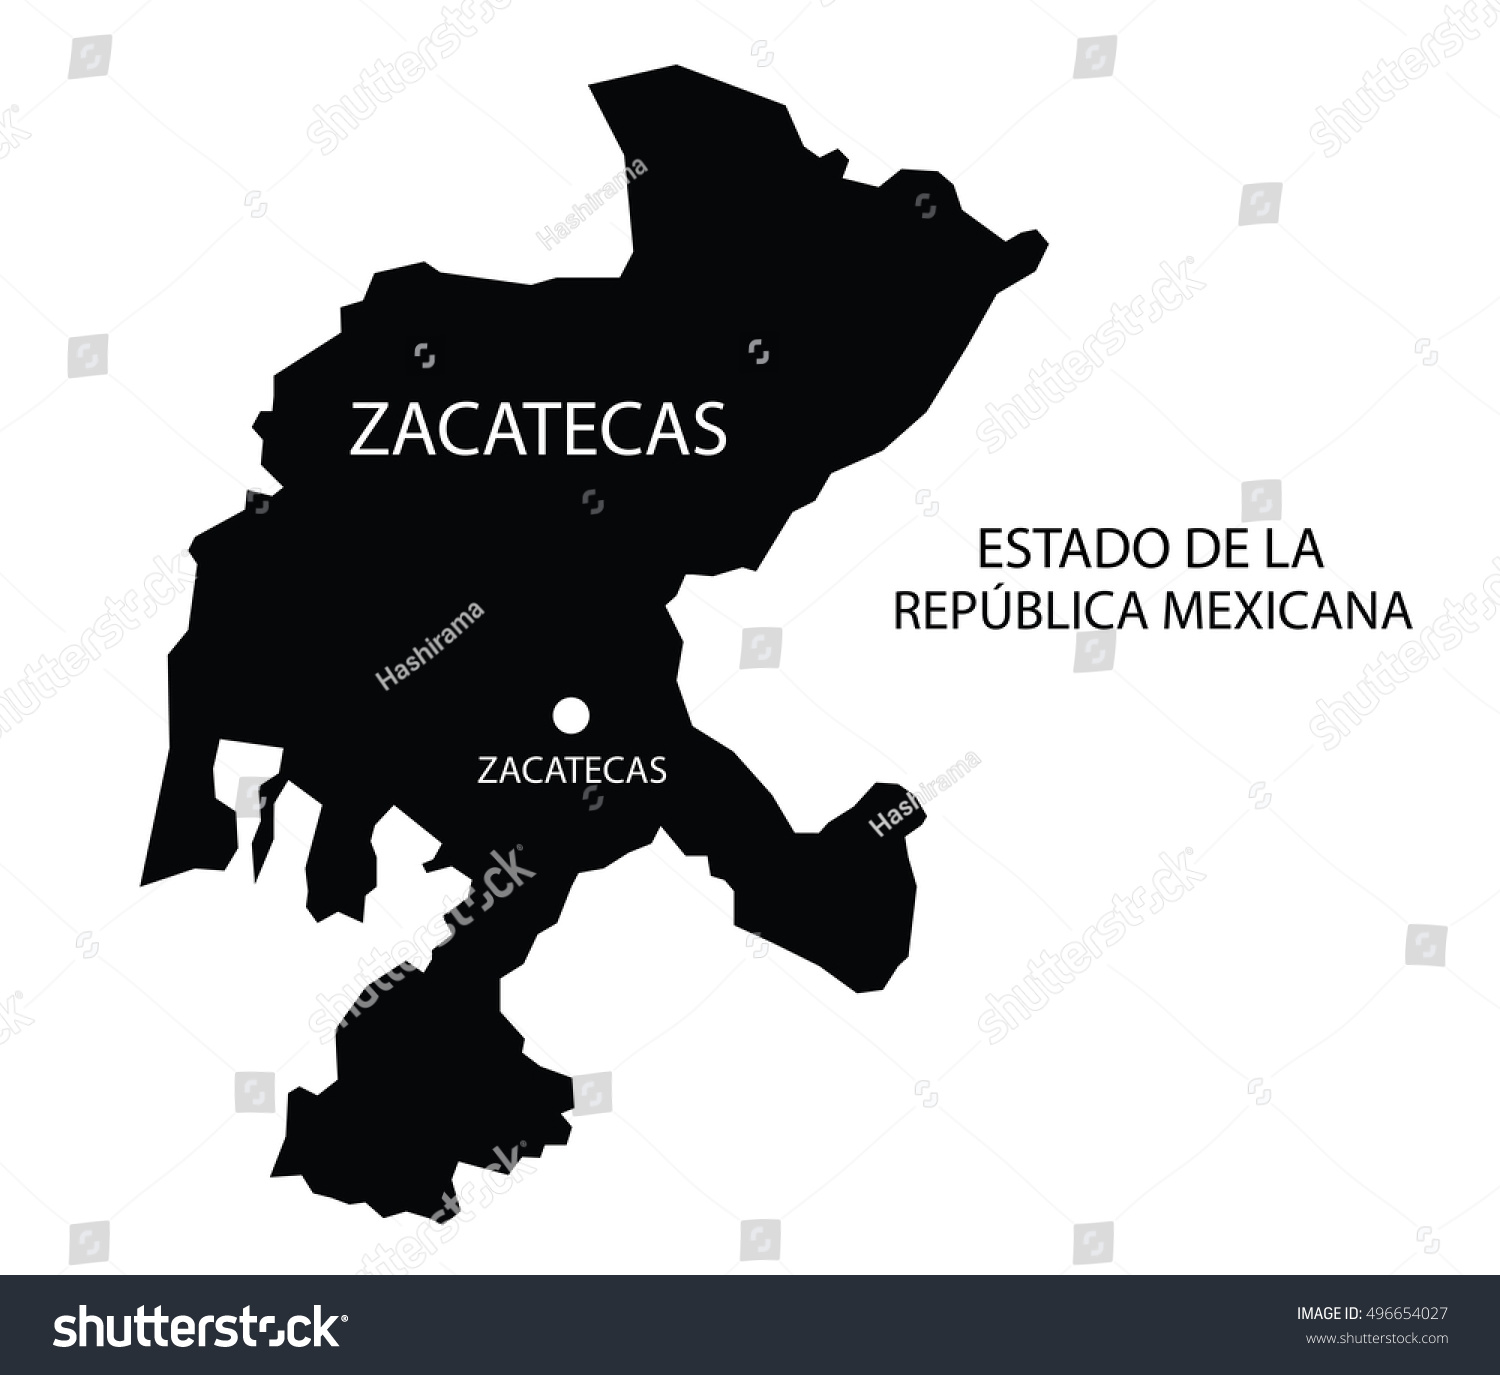 Zacatecas Mexico Map la assessor map etsu map